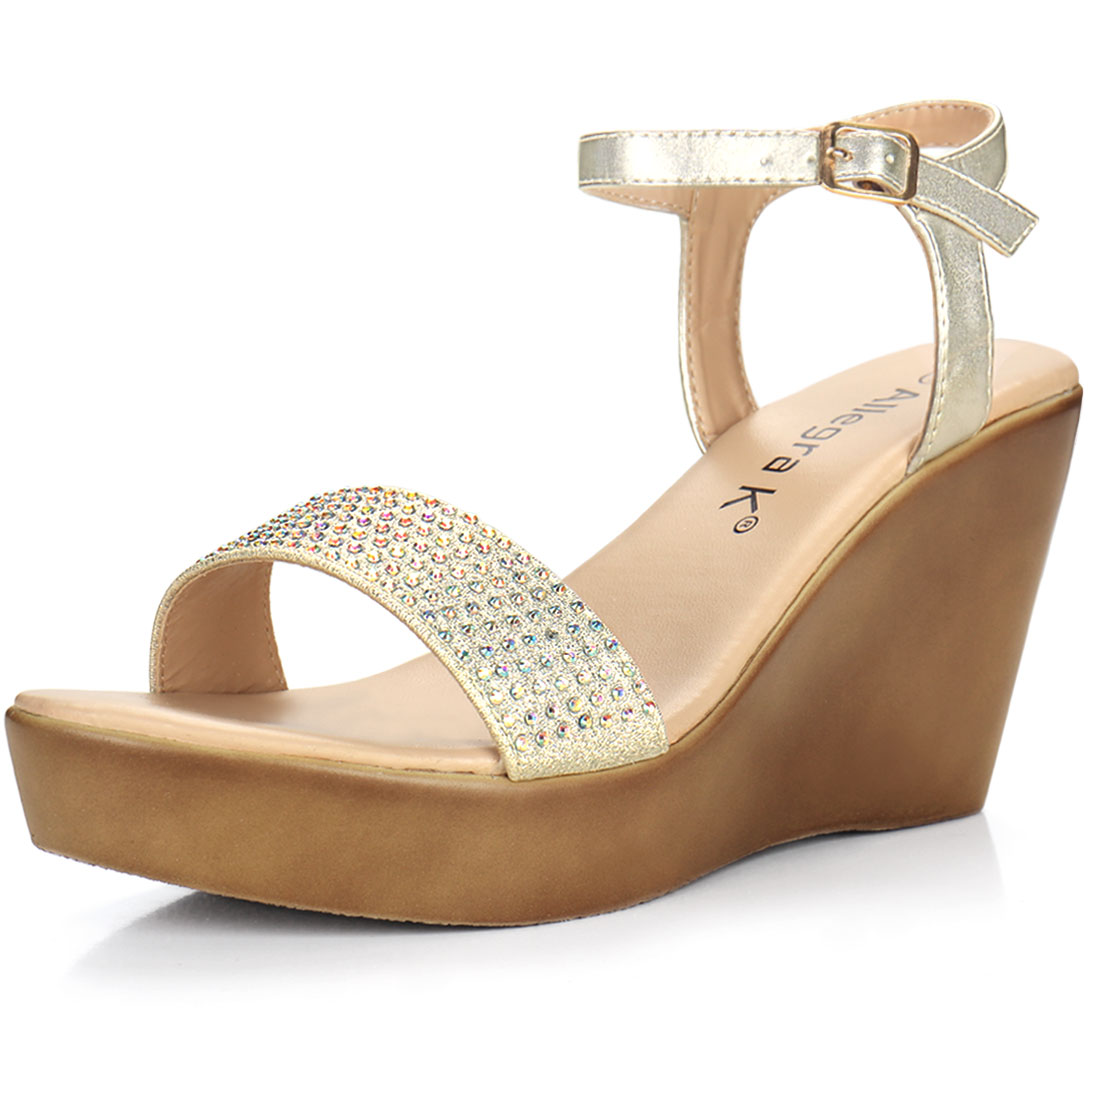 Woman Rhinestones Embellished Open Toe Slingback Wedge Sandals Gold US 11